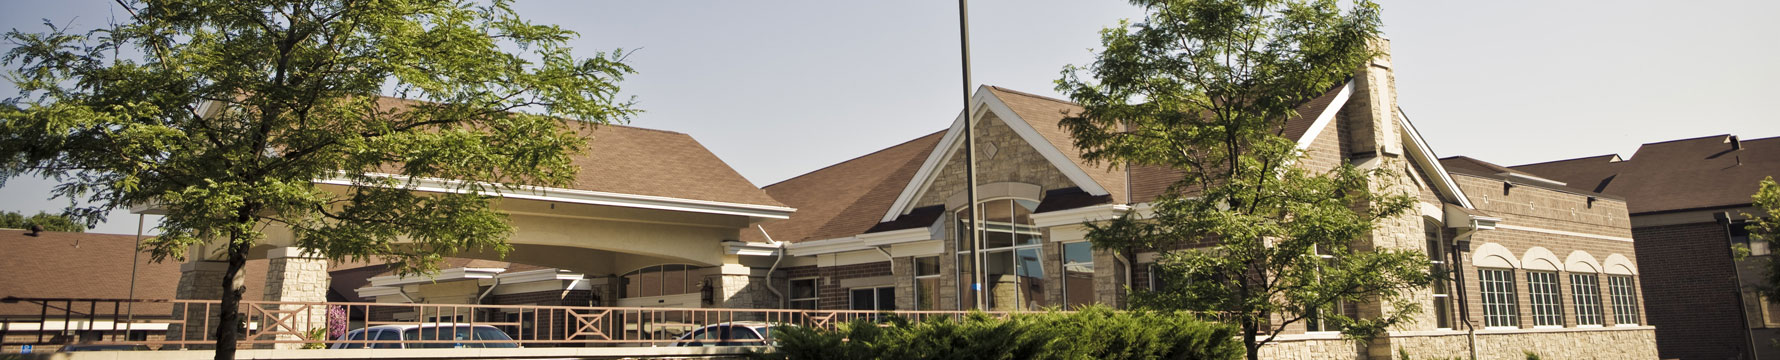 The front entrance to Friendship Village of Bloomington retirement community